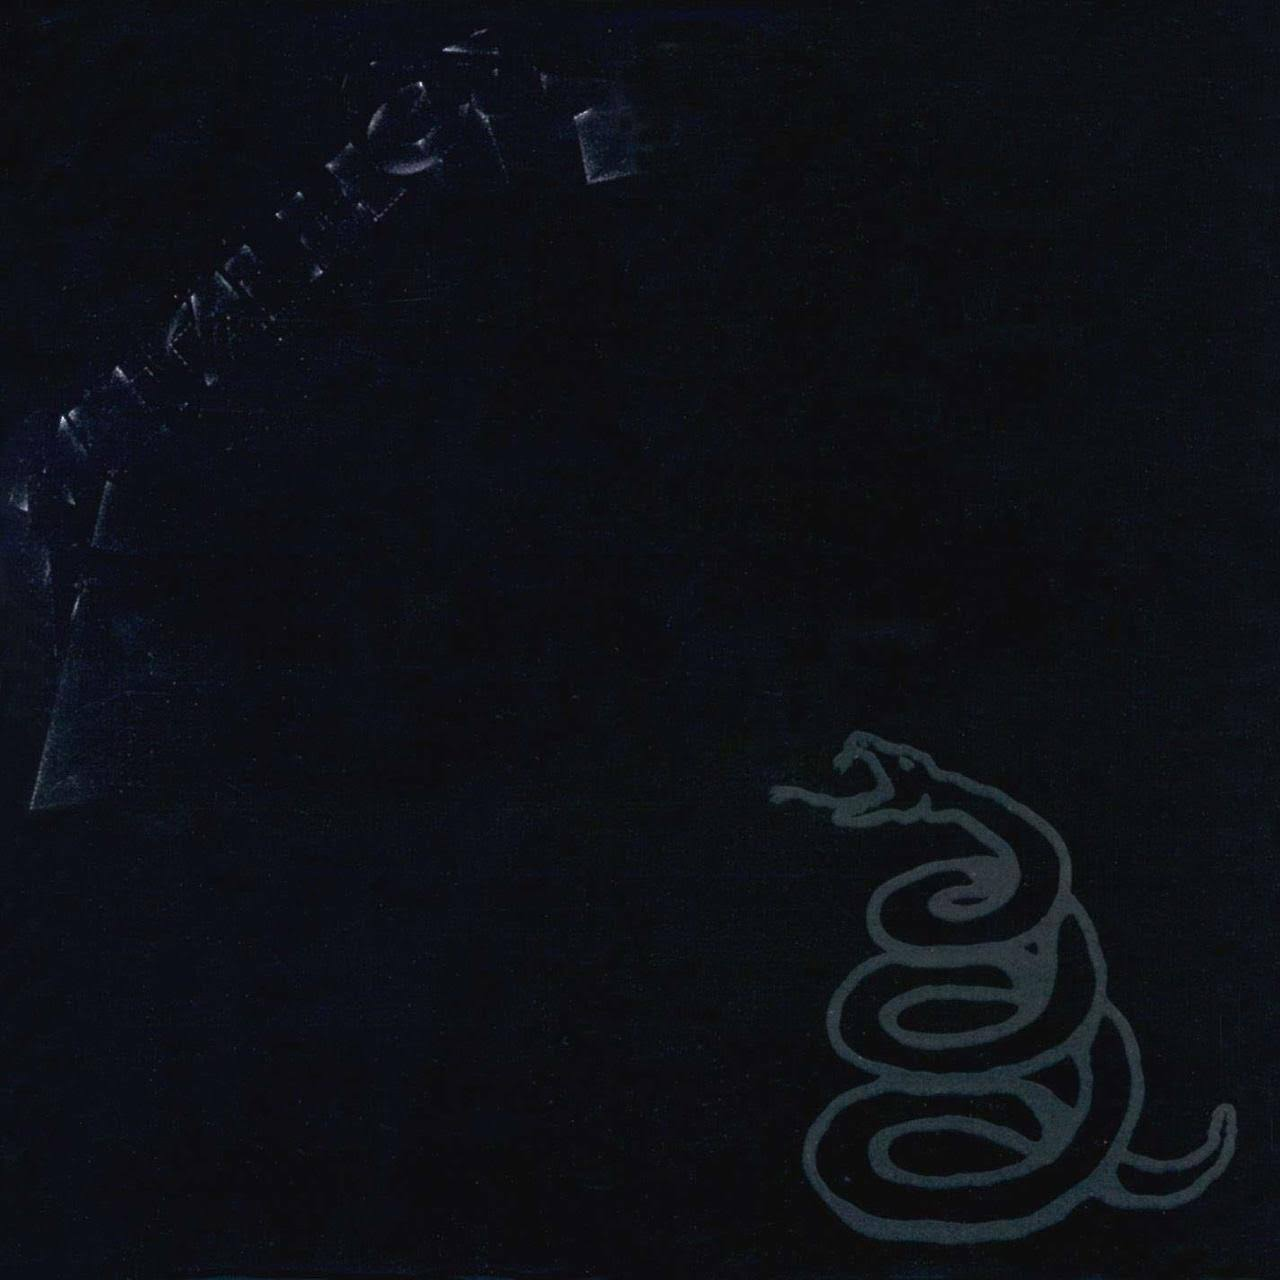 Metallica (The Black Album) - Metallica